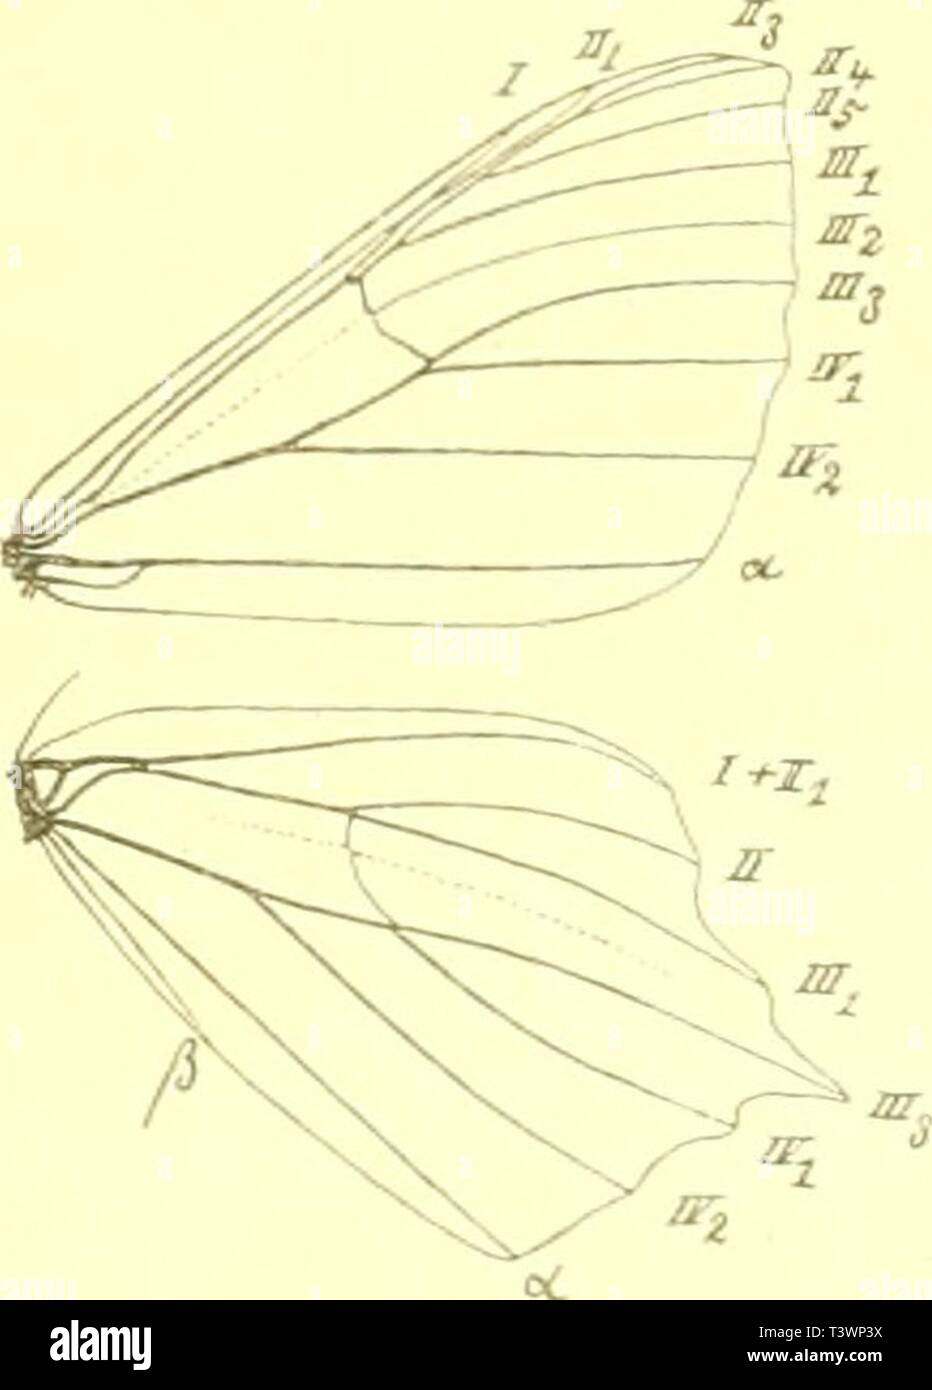 Archive image from page 104 of Die Schmetterlinge Europas (1908) - Stock Image